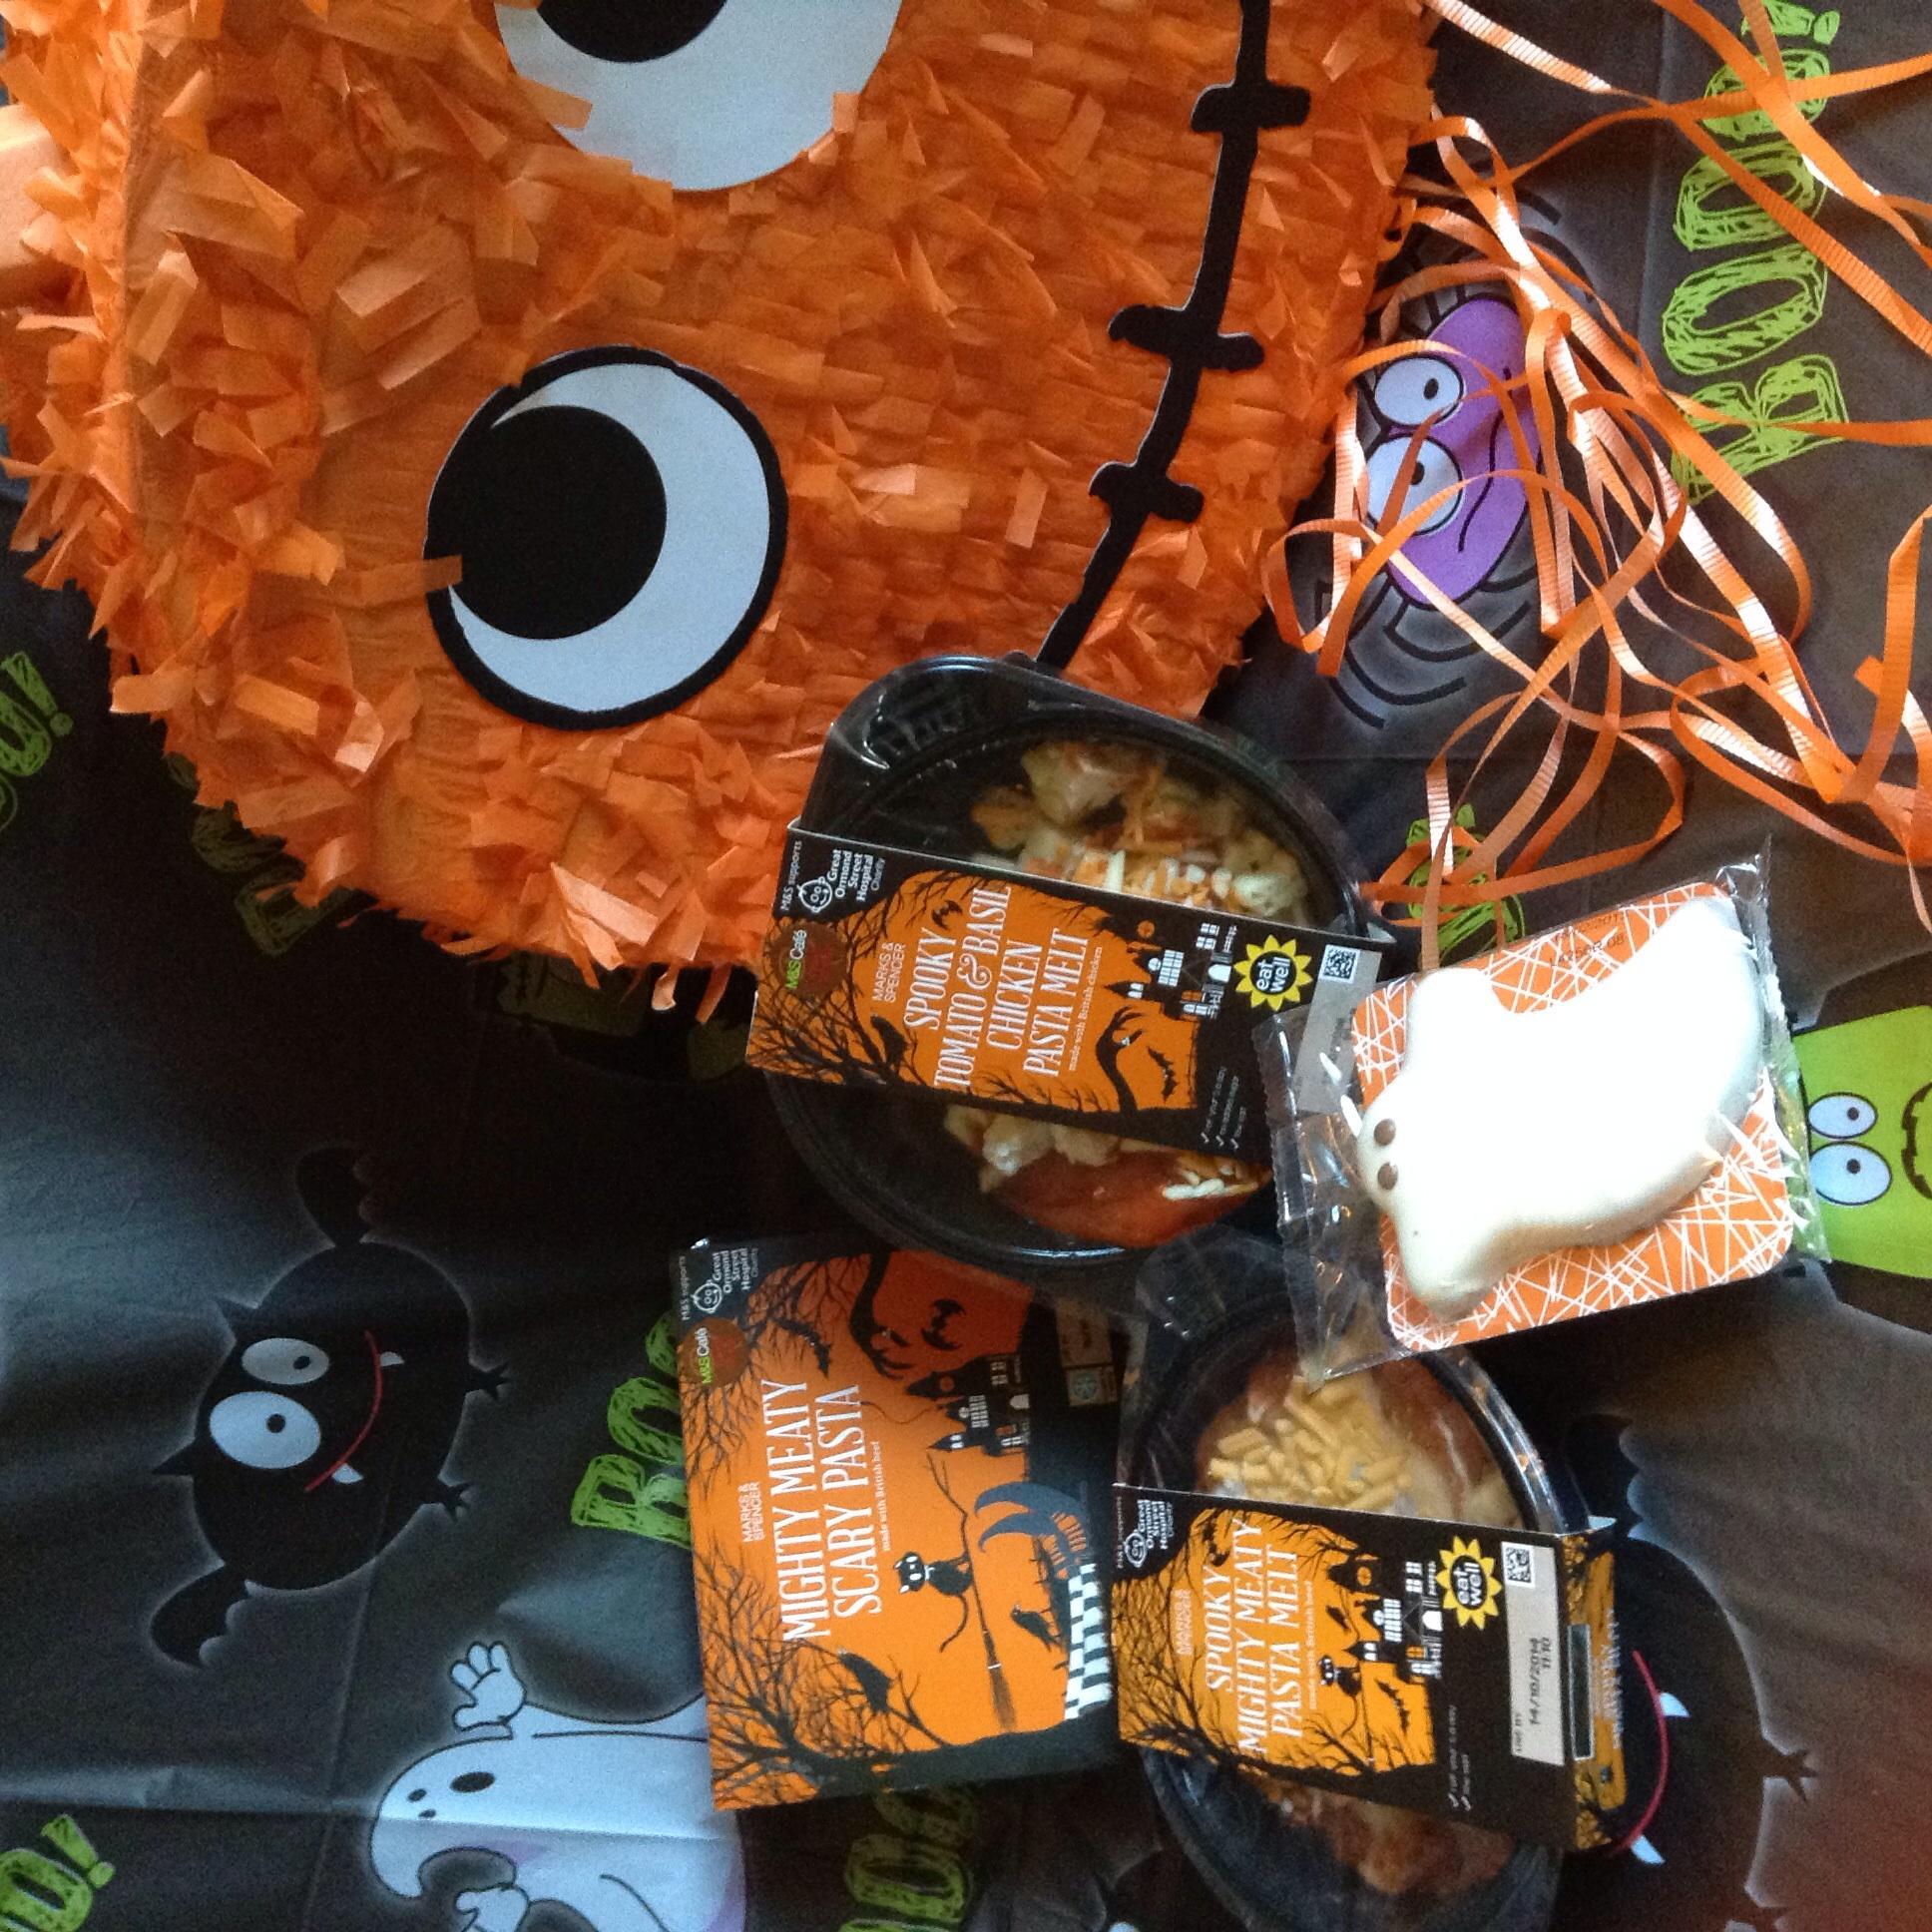 Scary pasta meals for kids £2.50 and £2.75 - Ghost cookie £1.50